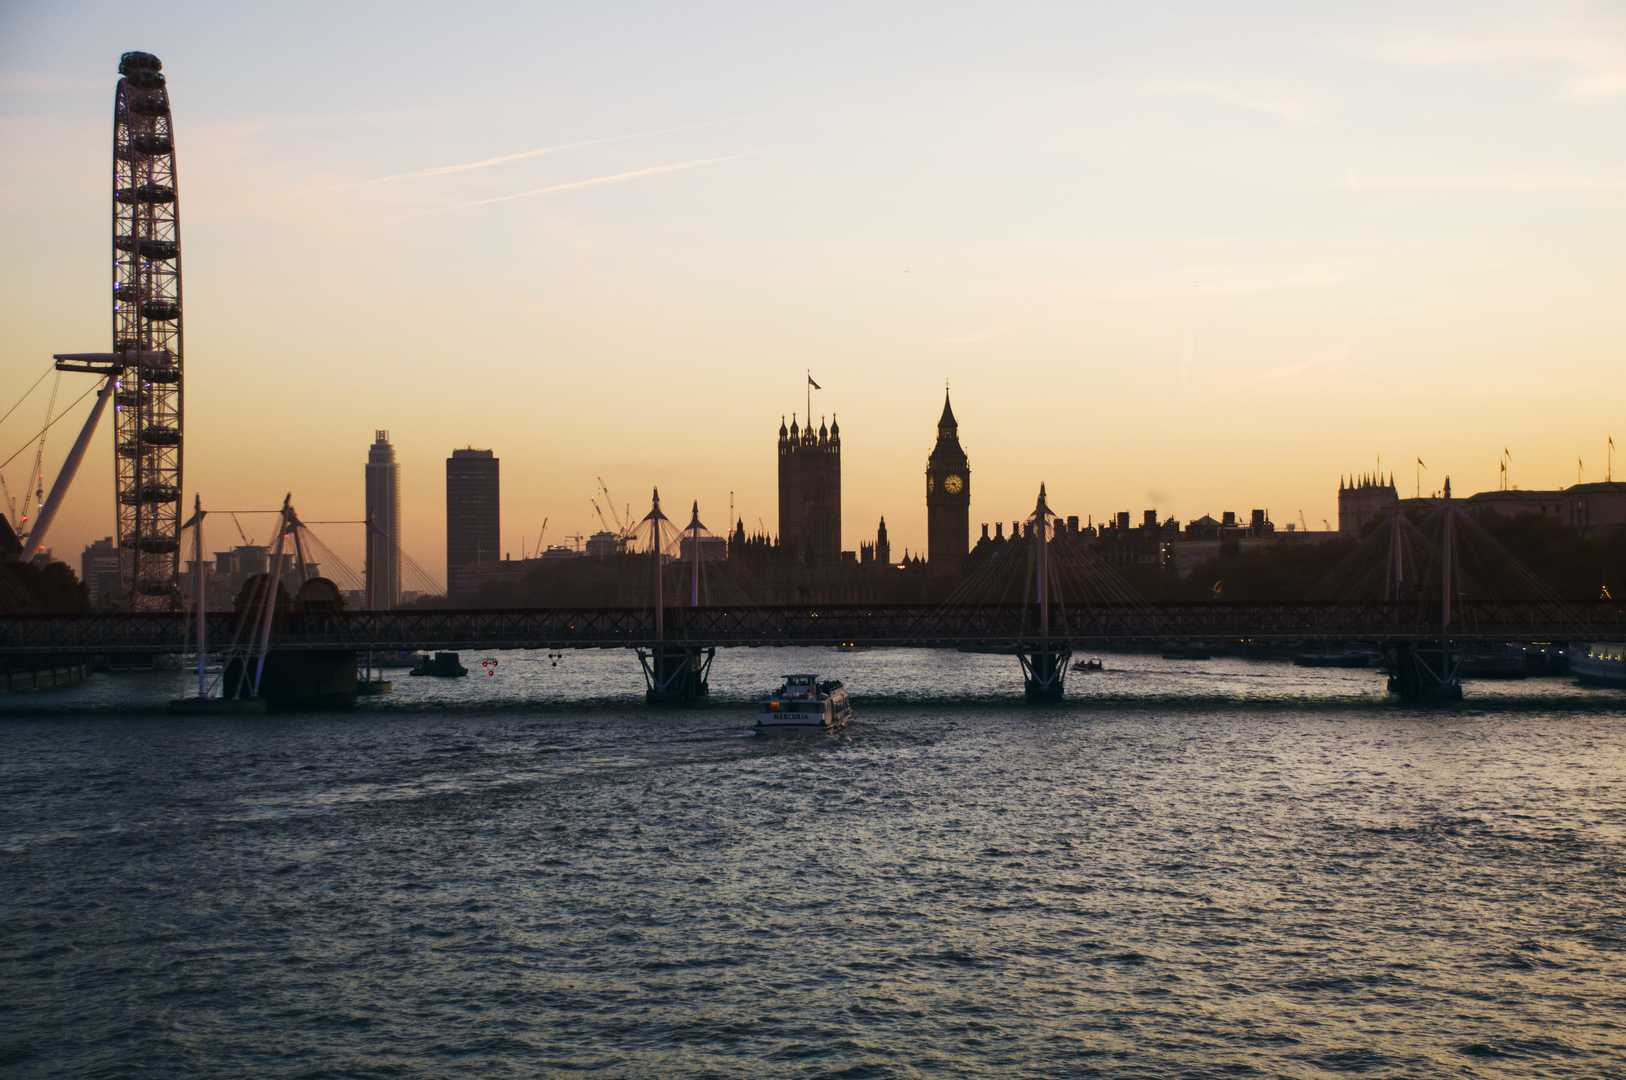 Londra, dal Waterloo Bridge verso Westminster Abbey